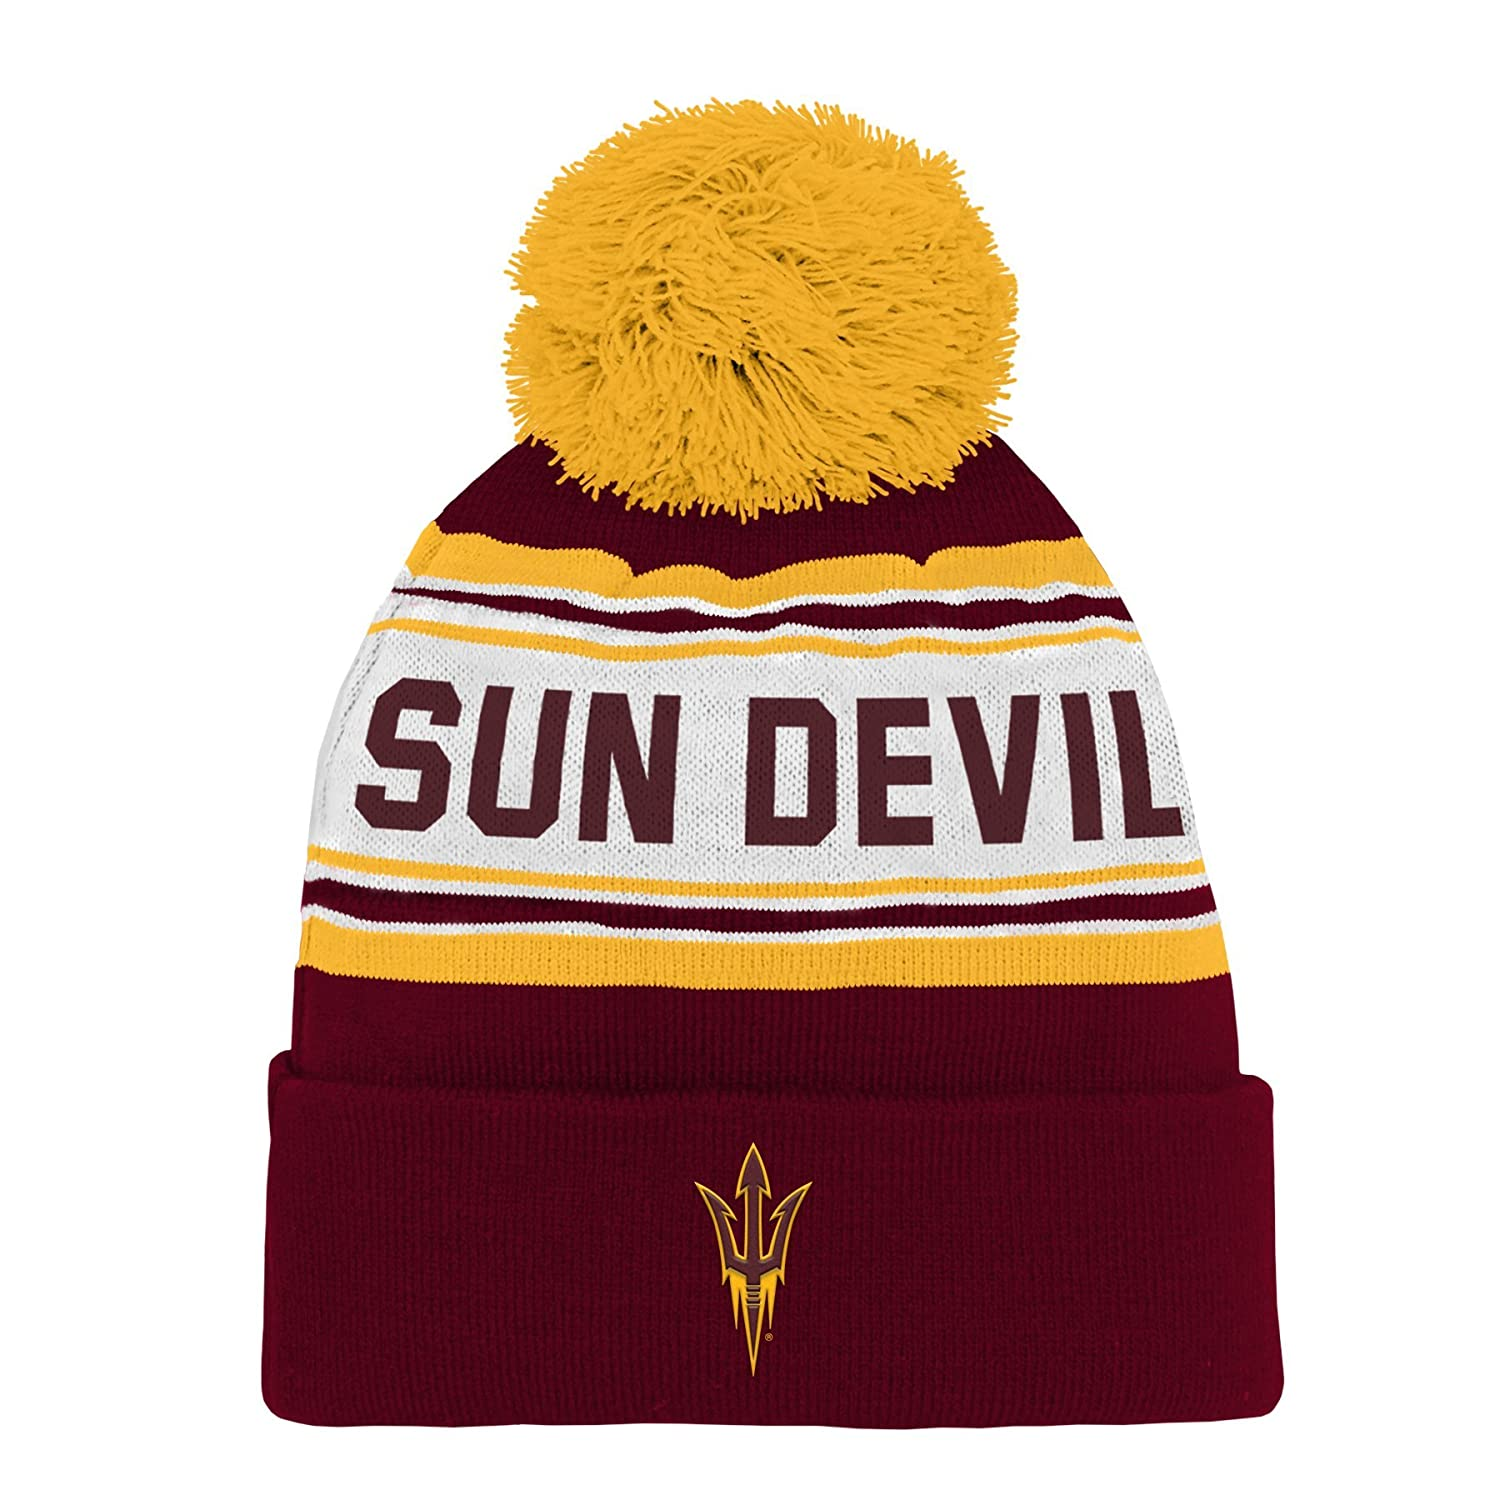 separation shoes c5be5 93bb5 Amazon.com   NCAA by Outerstuff NCAA Arizona State Sun Devils Toddler  Jacquard Cuffed Knit Hat w  Pom, Maroon, Toddler One Size   Clothing